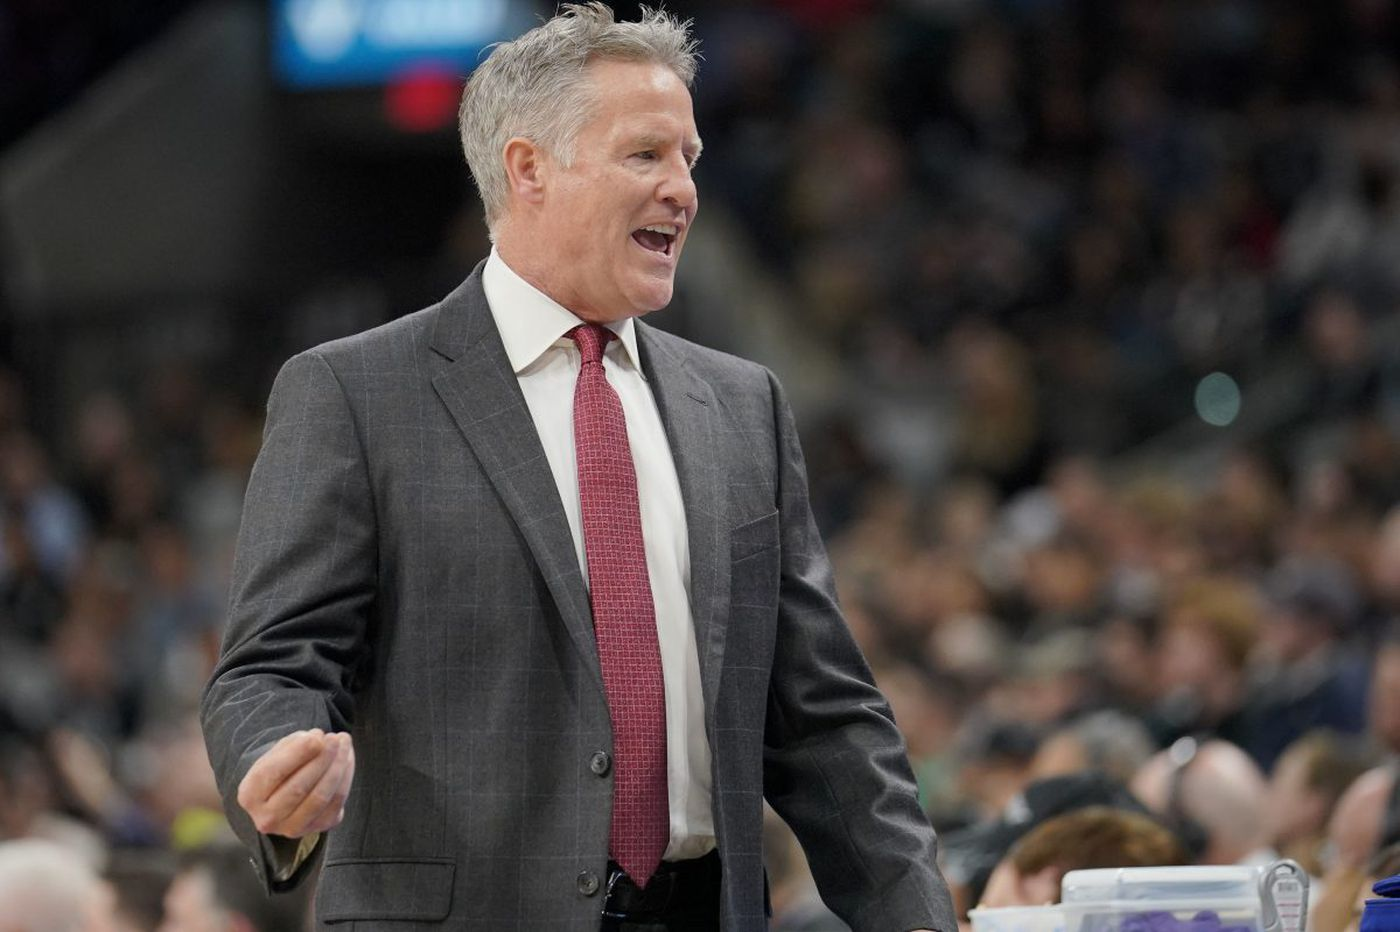 Amid impressive wins, worries regarding turnovers and fouls still a constant for 76ers